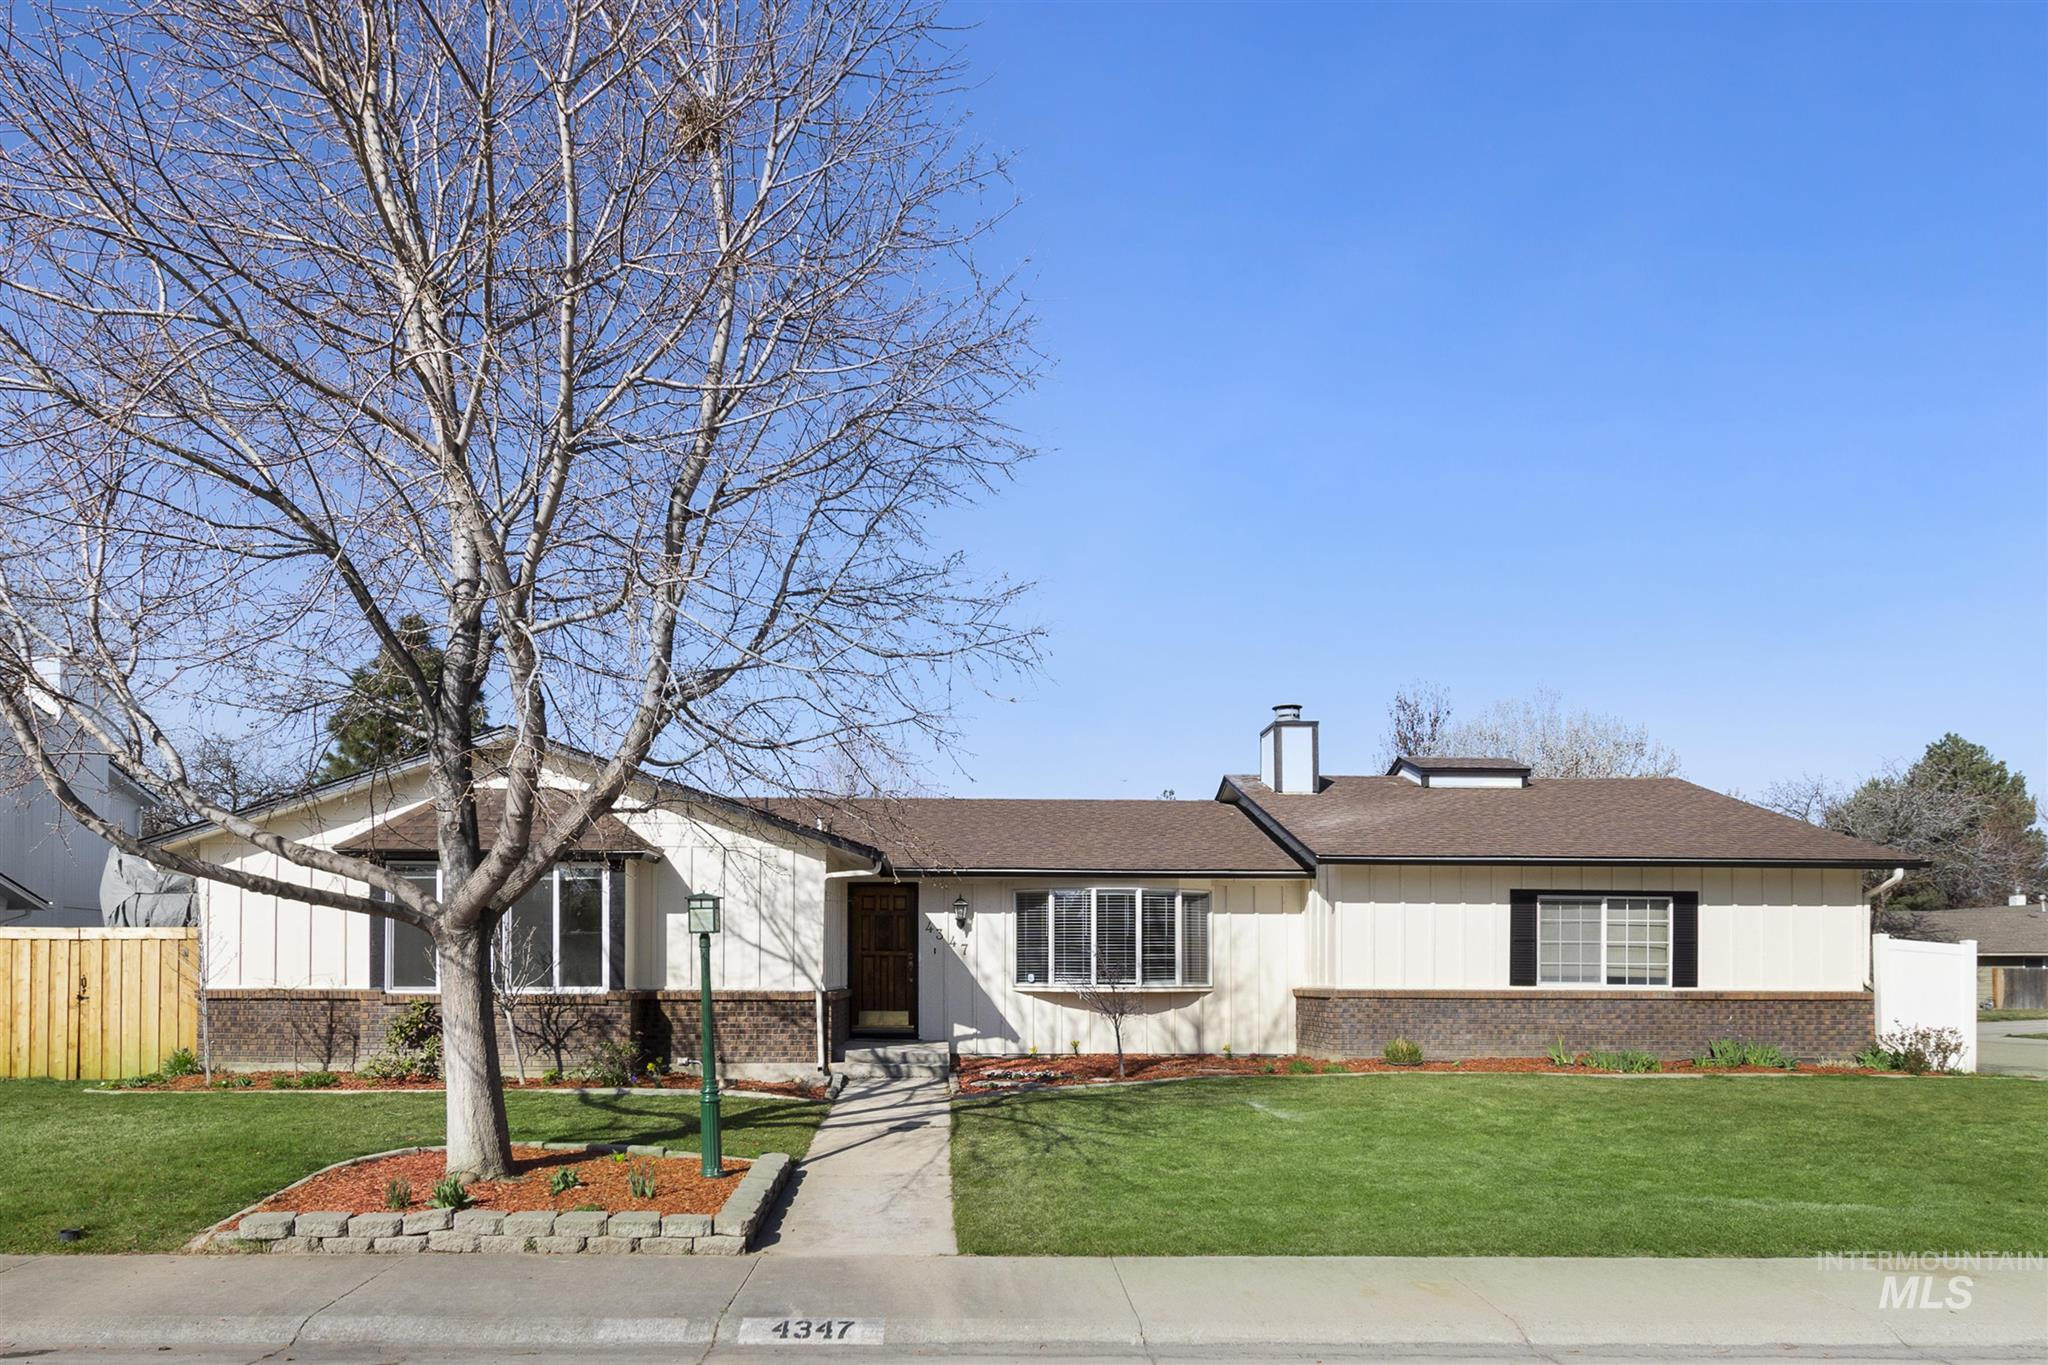 4347 Nystrom Way Property Photo - Boise, ID real estate listing